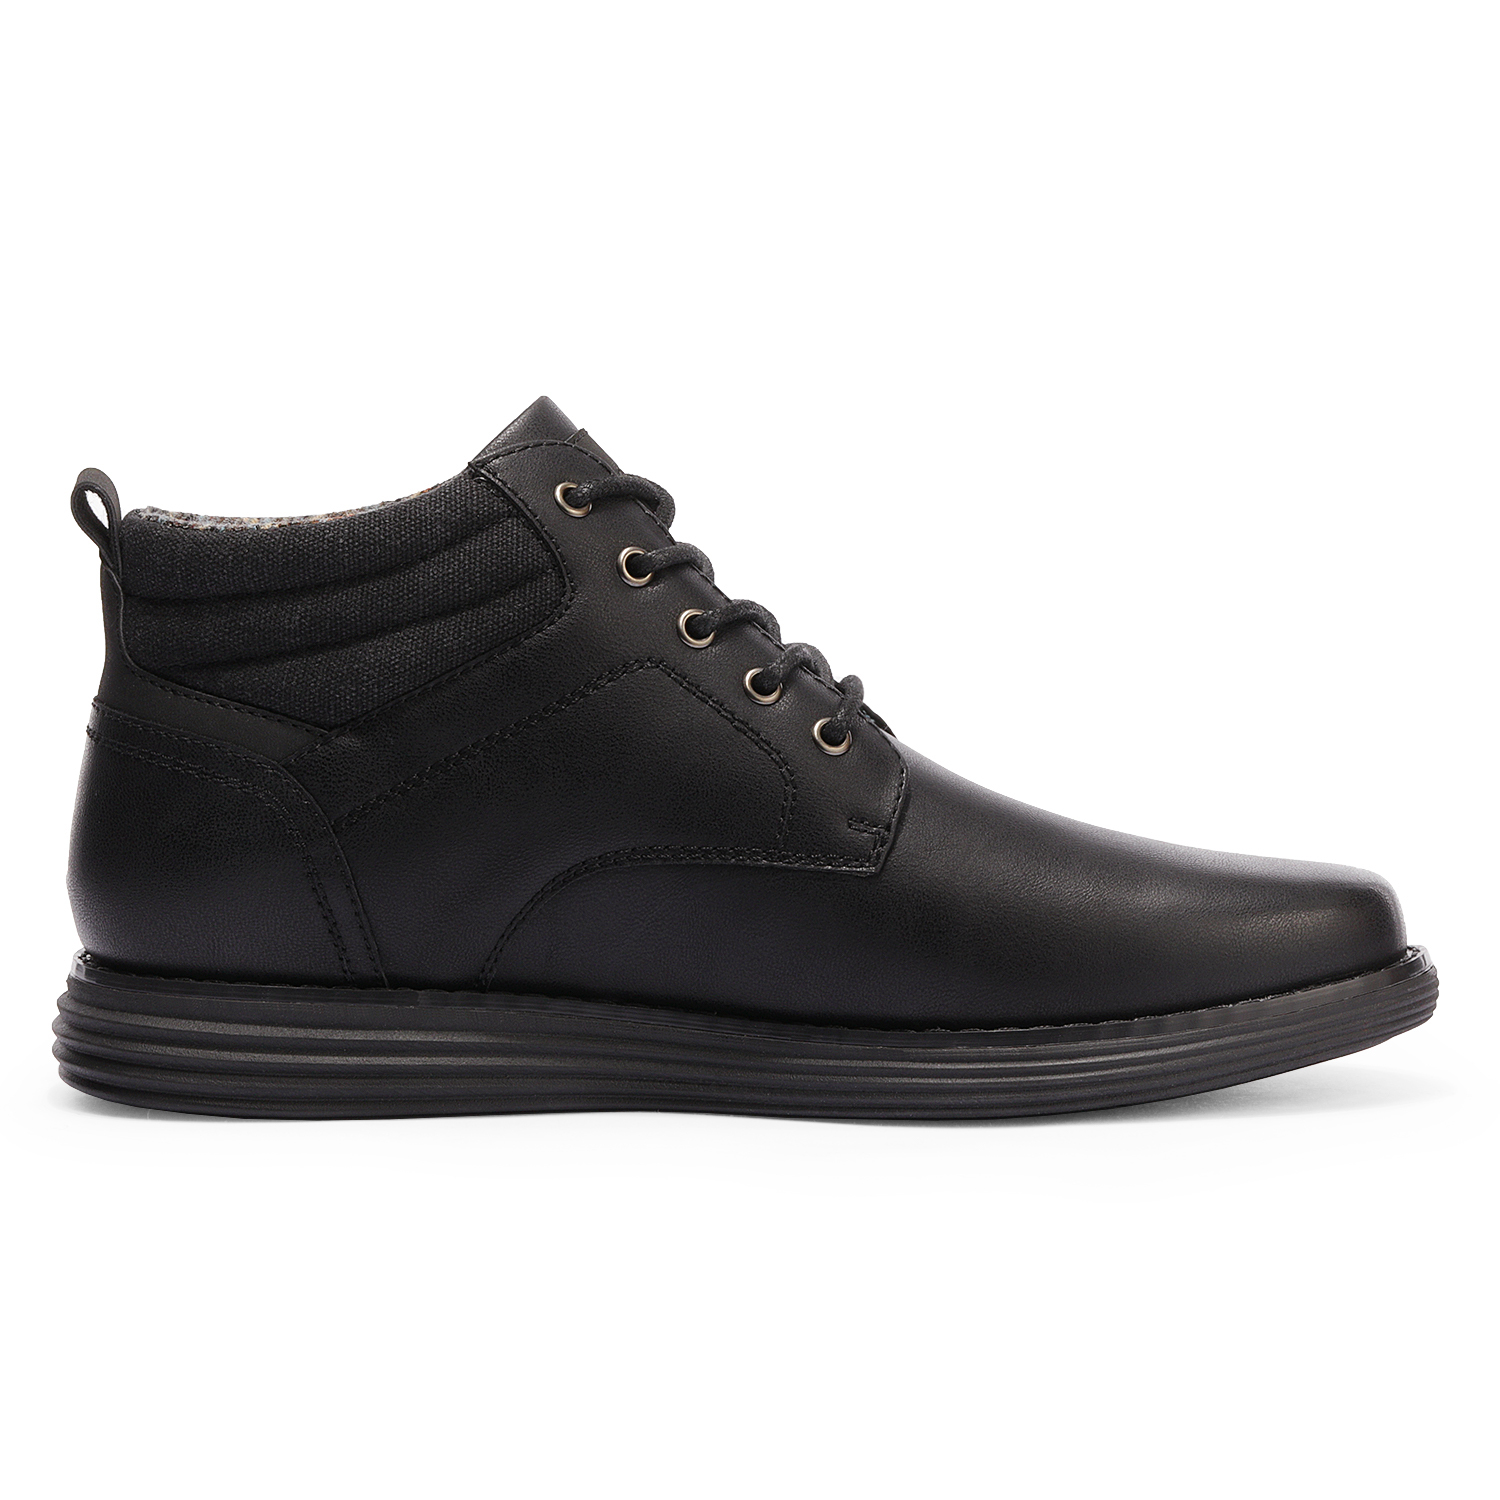 Bruno Marc Men/'s Mid Top Chukka Boots Lace Up Stylish Dress Water-Resistant Shoe